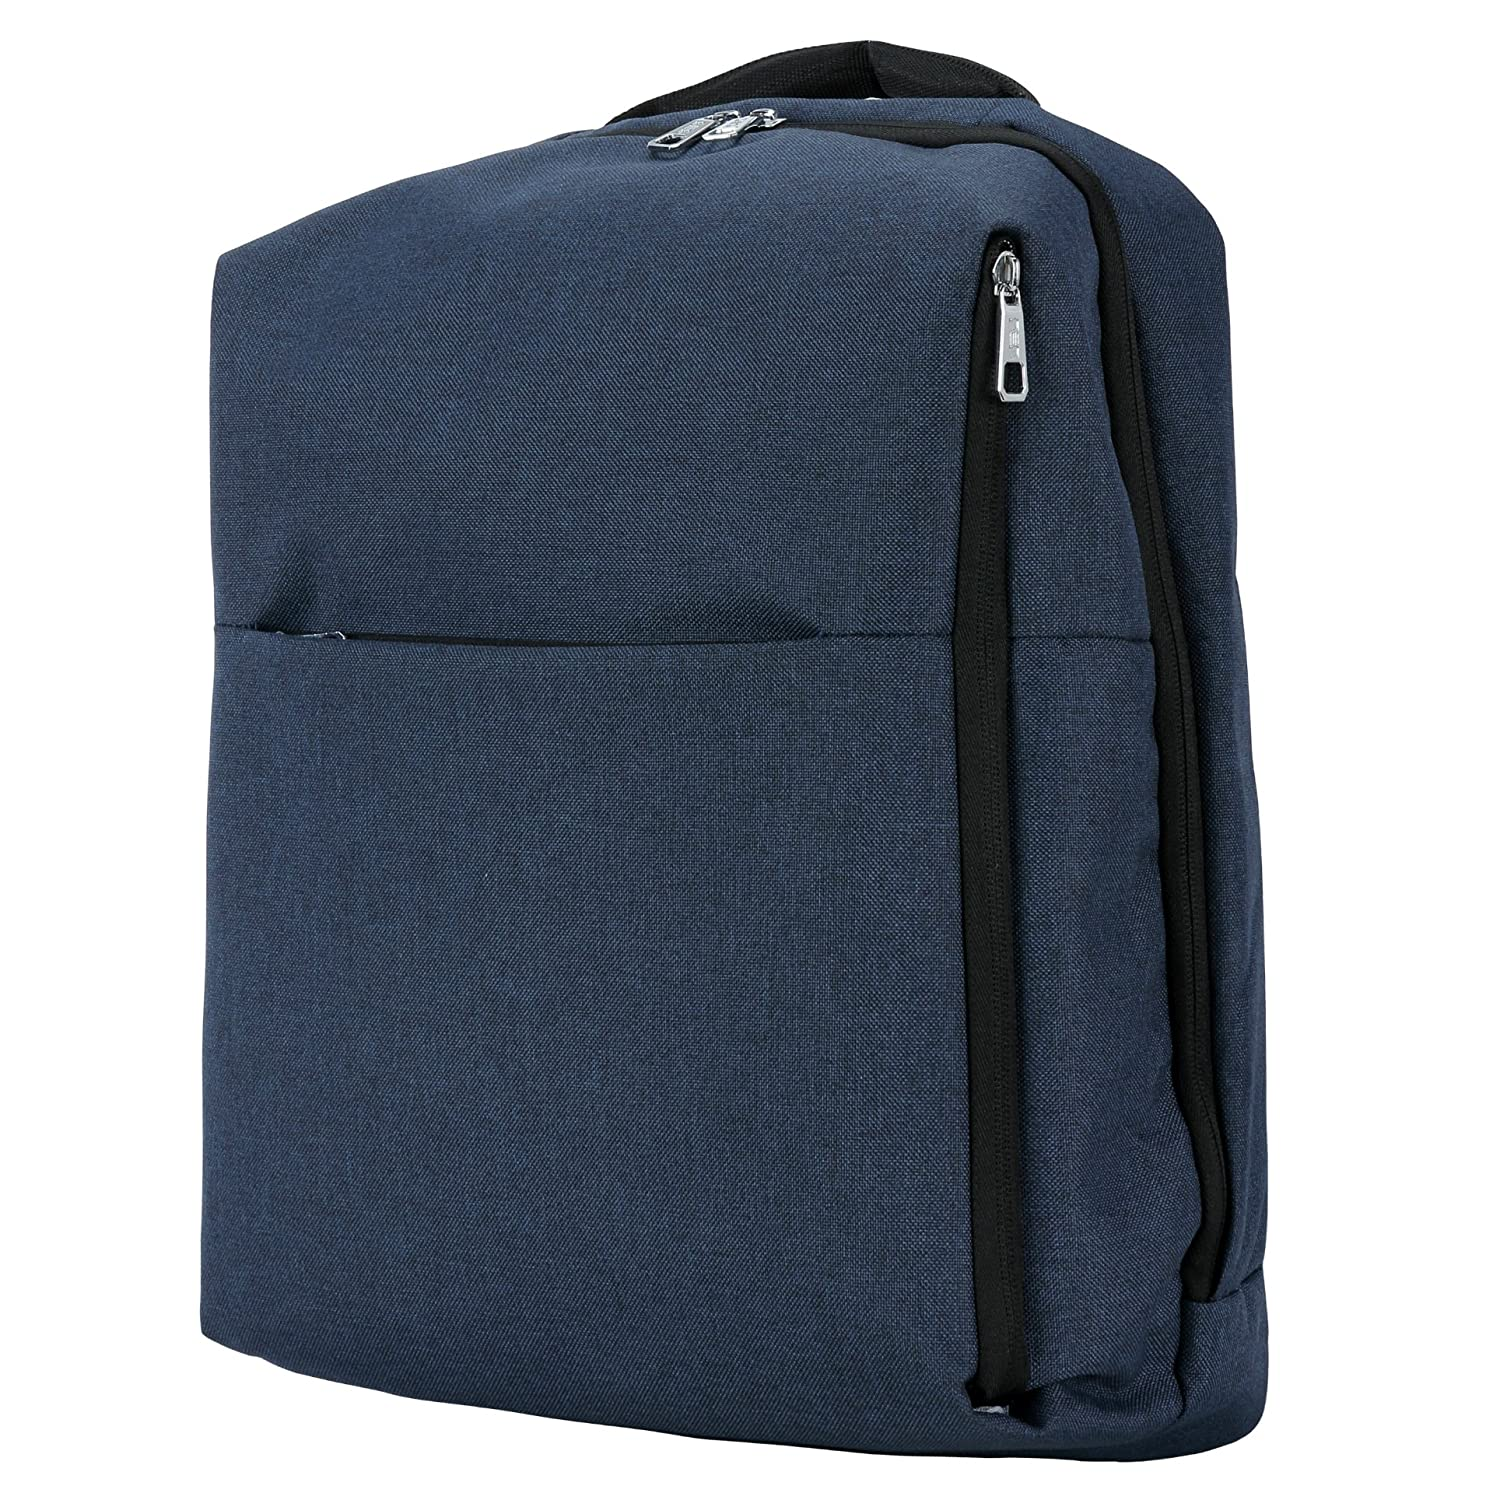 Water Resistant Laptop Backpack, Anti-Theft School Travel Backpack Fits Up to 15.6 Inch Laptop Blue